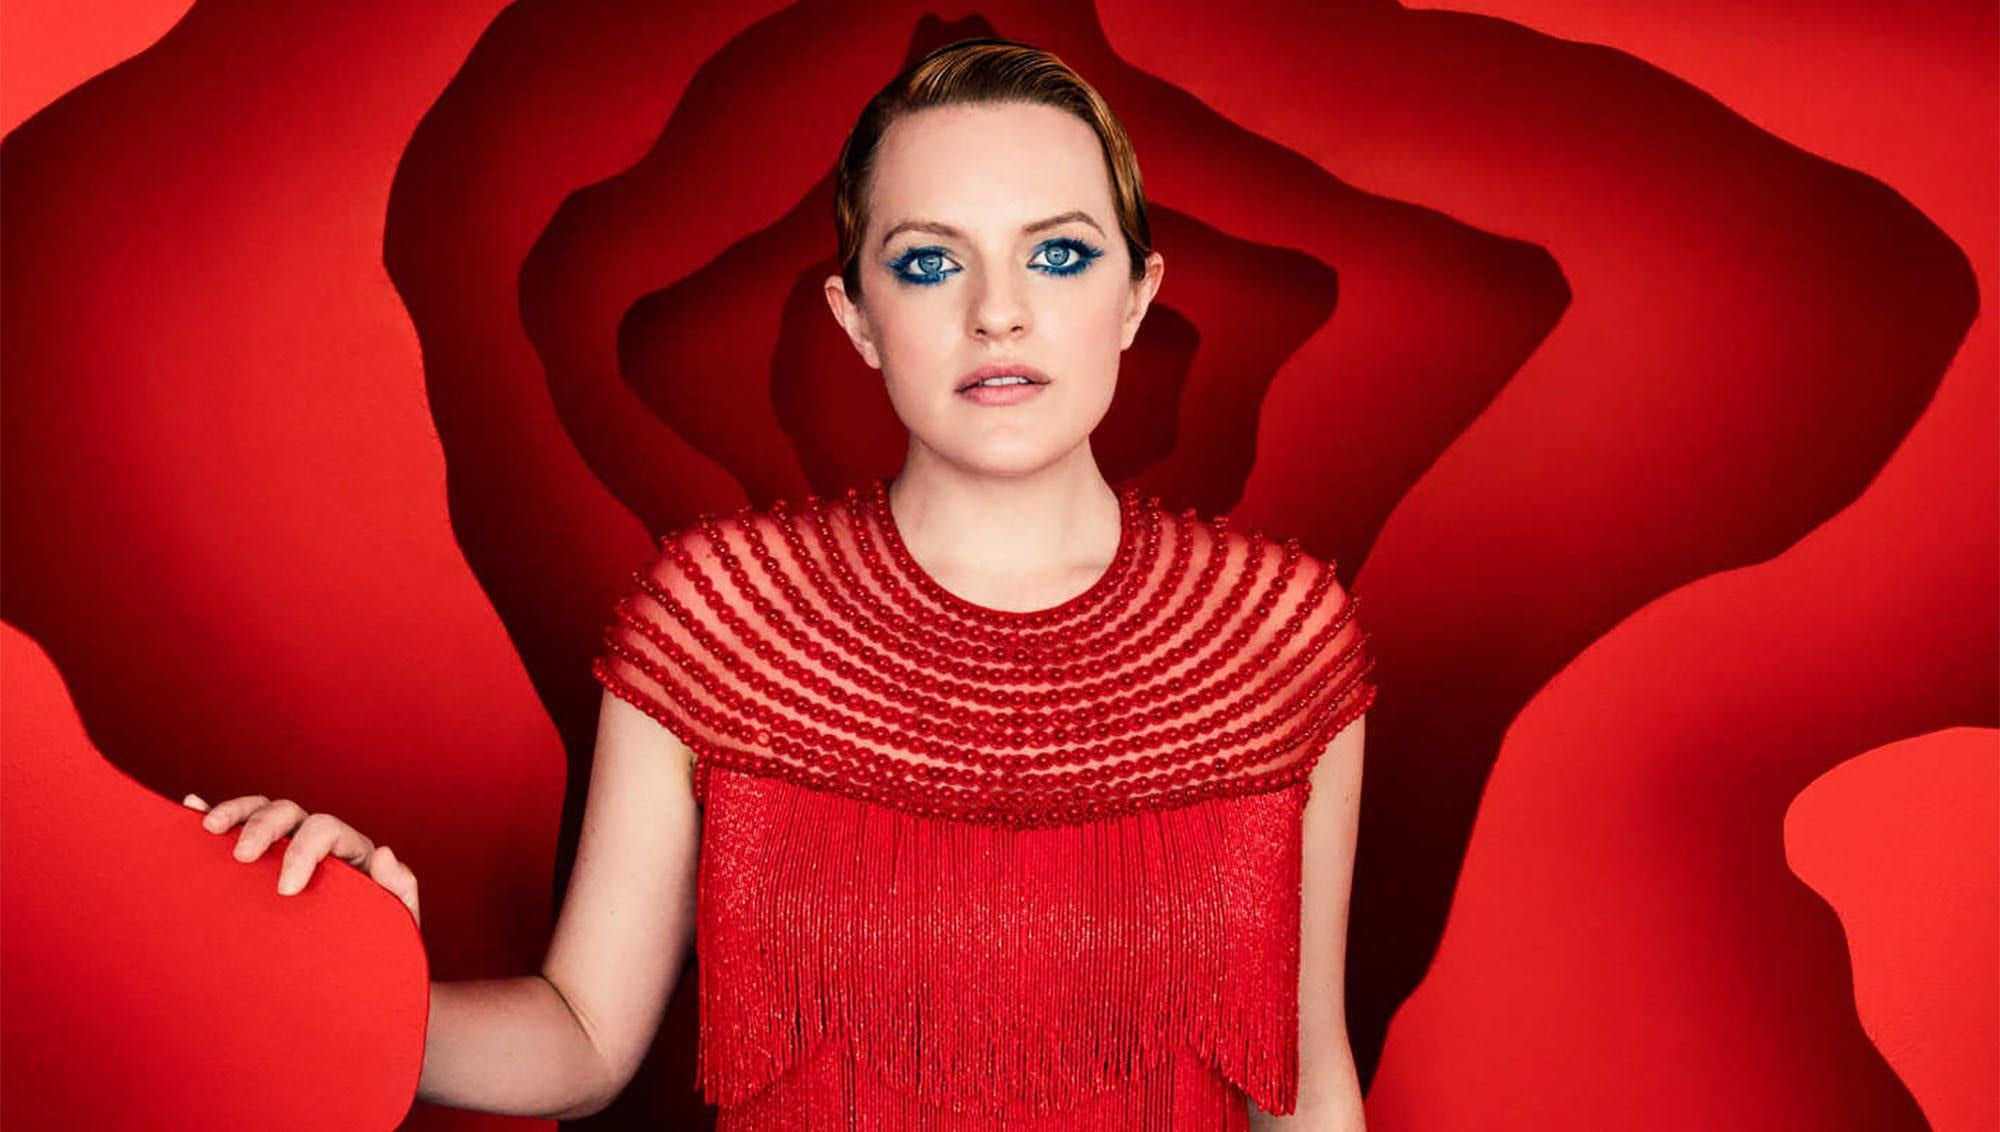 To celebrate Elisabeth Moss's coterie of epic performances, here's everything she's ruled in that you need to watch asap.